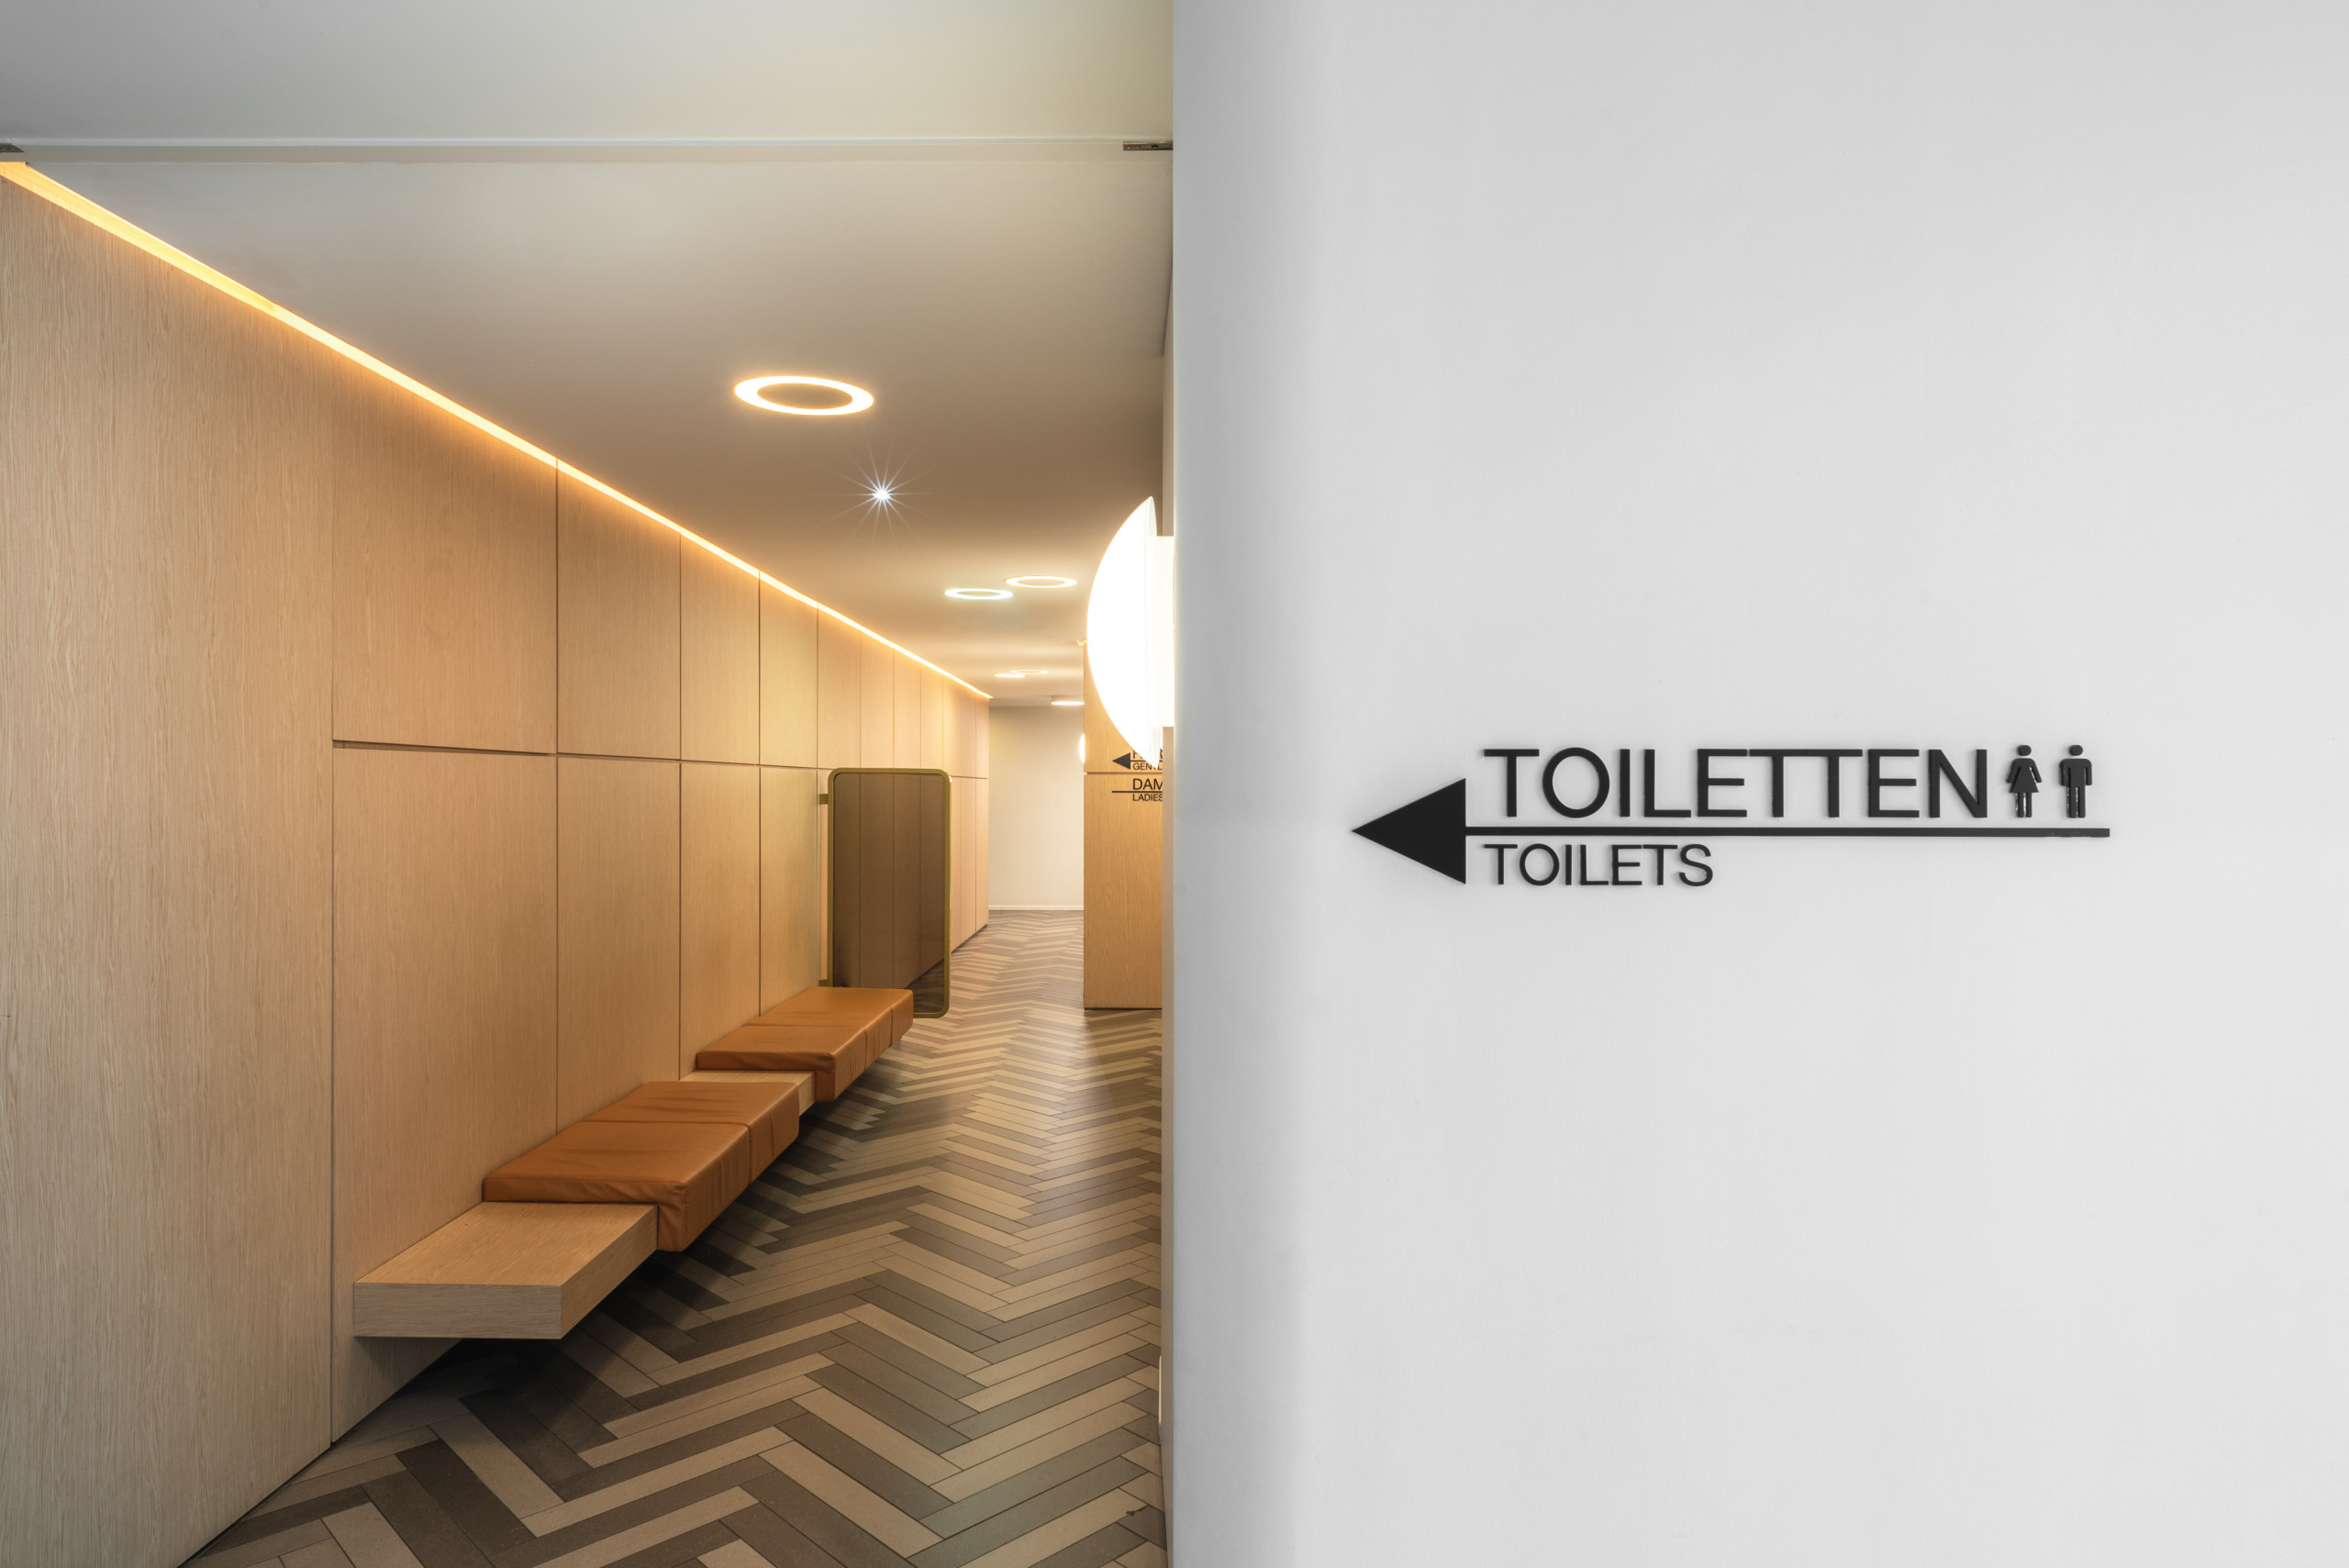 De Bijenkorf design of Toilet sign